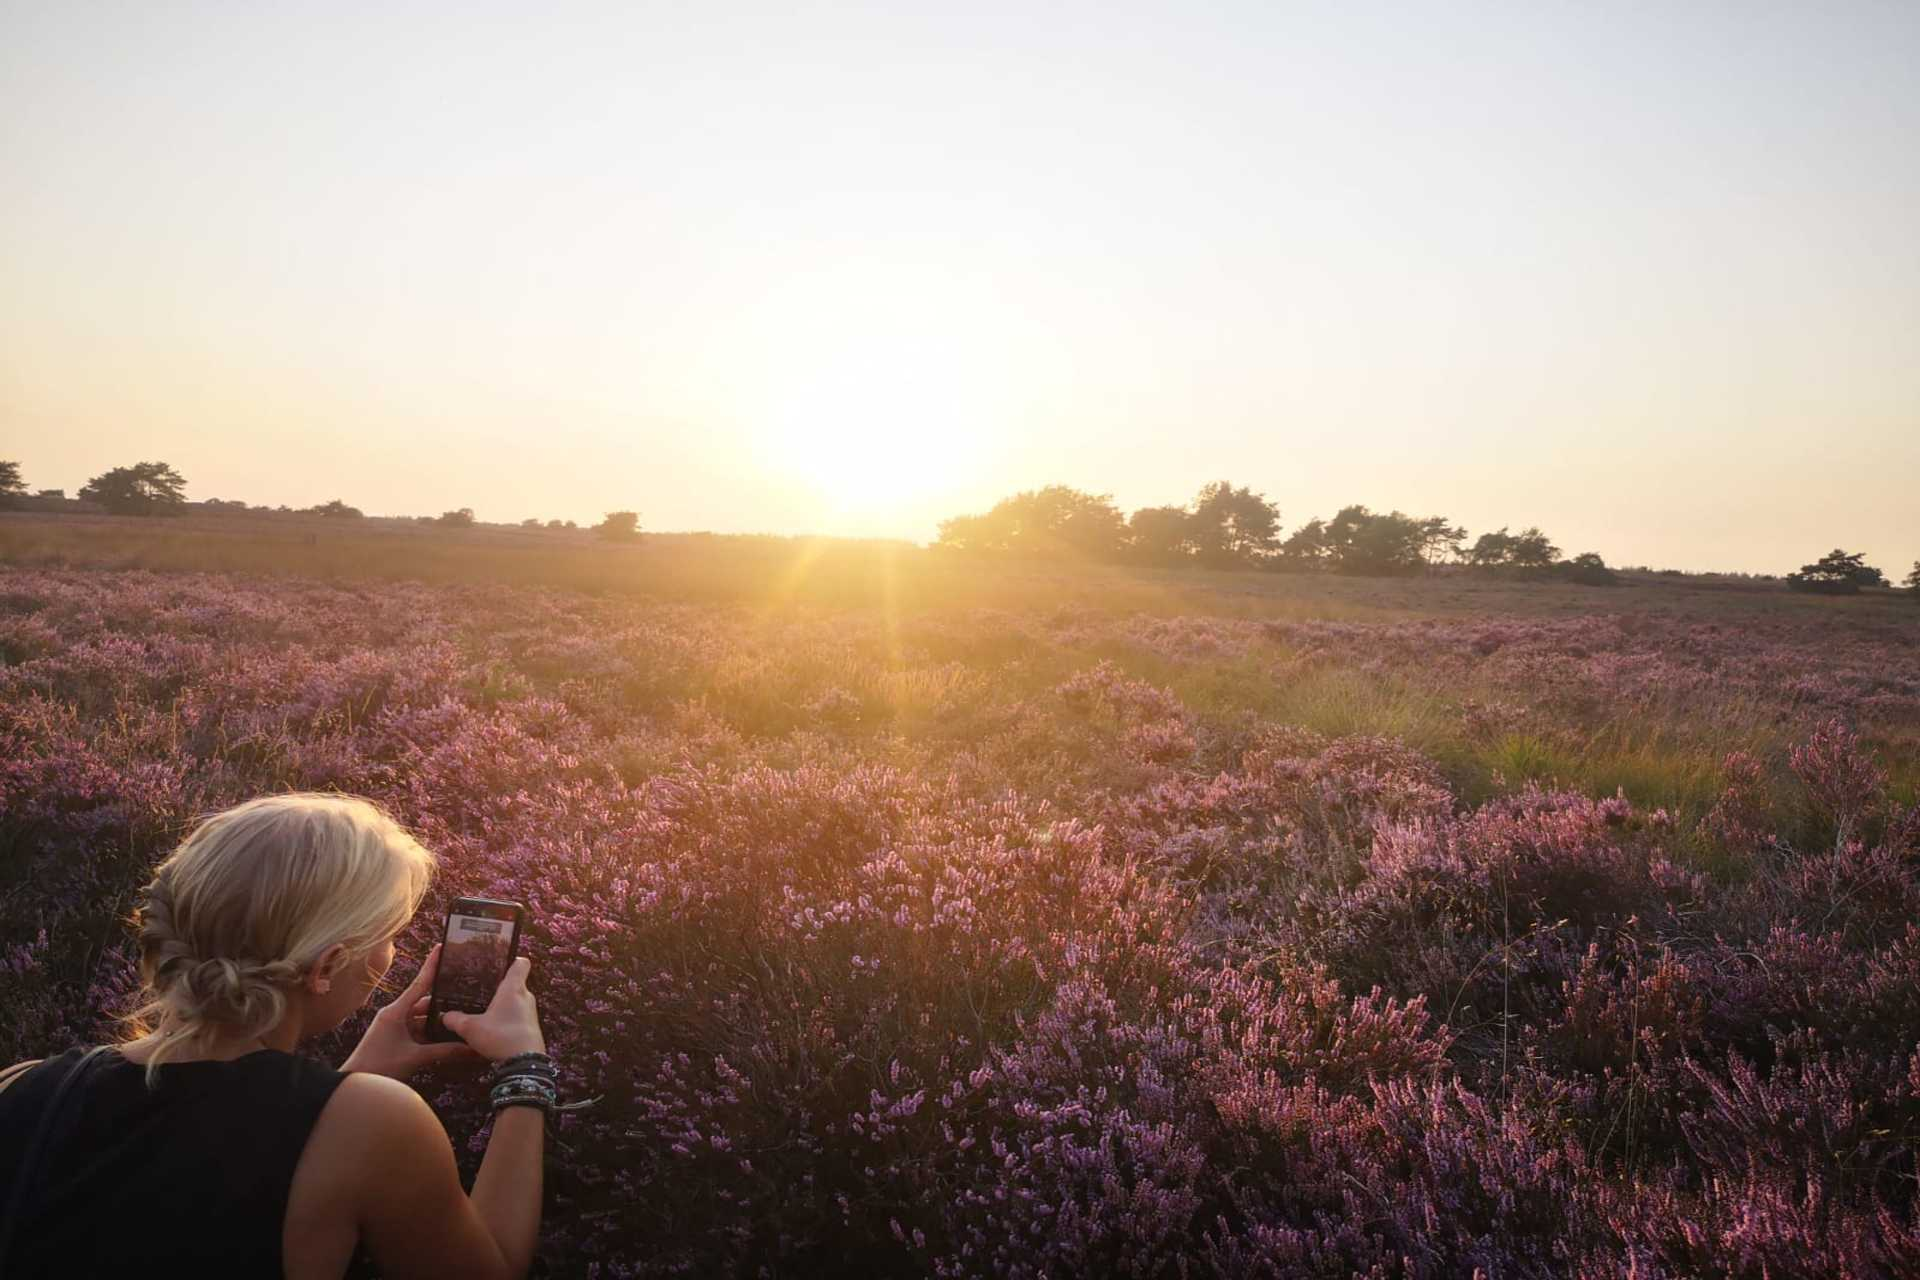 Enjoy the blooming heather near EuroParcs this late summer.